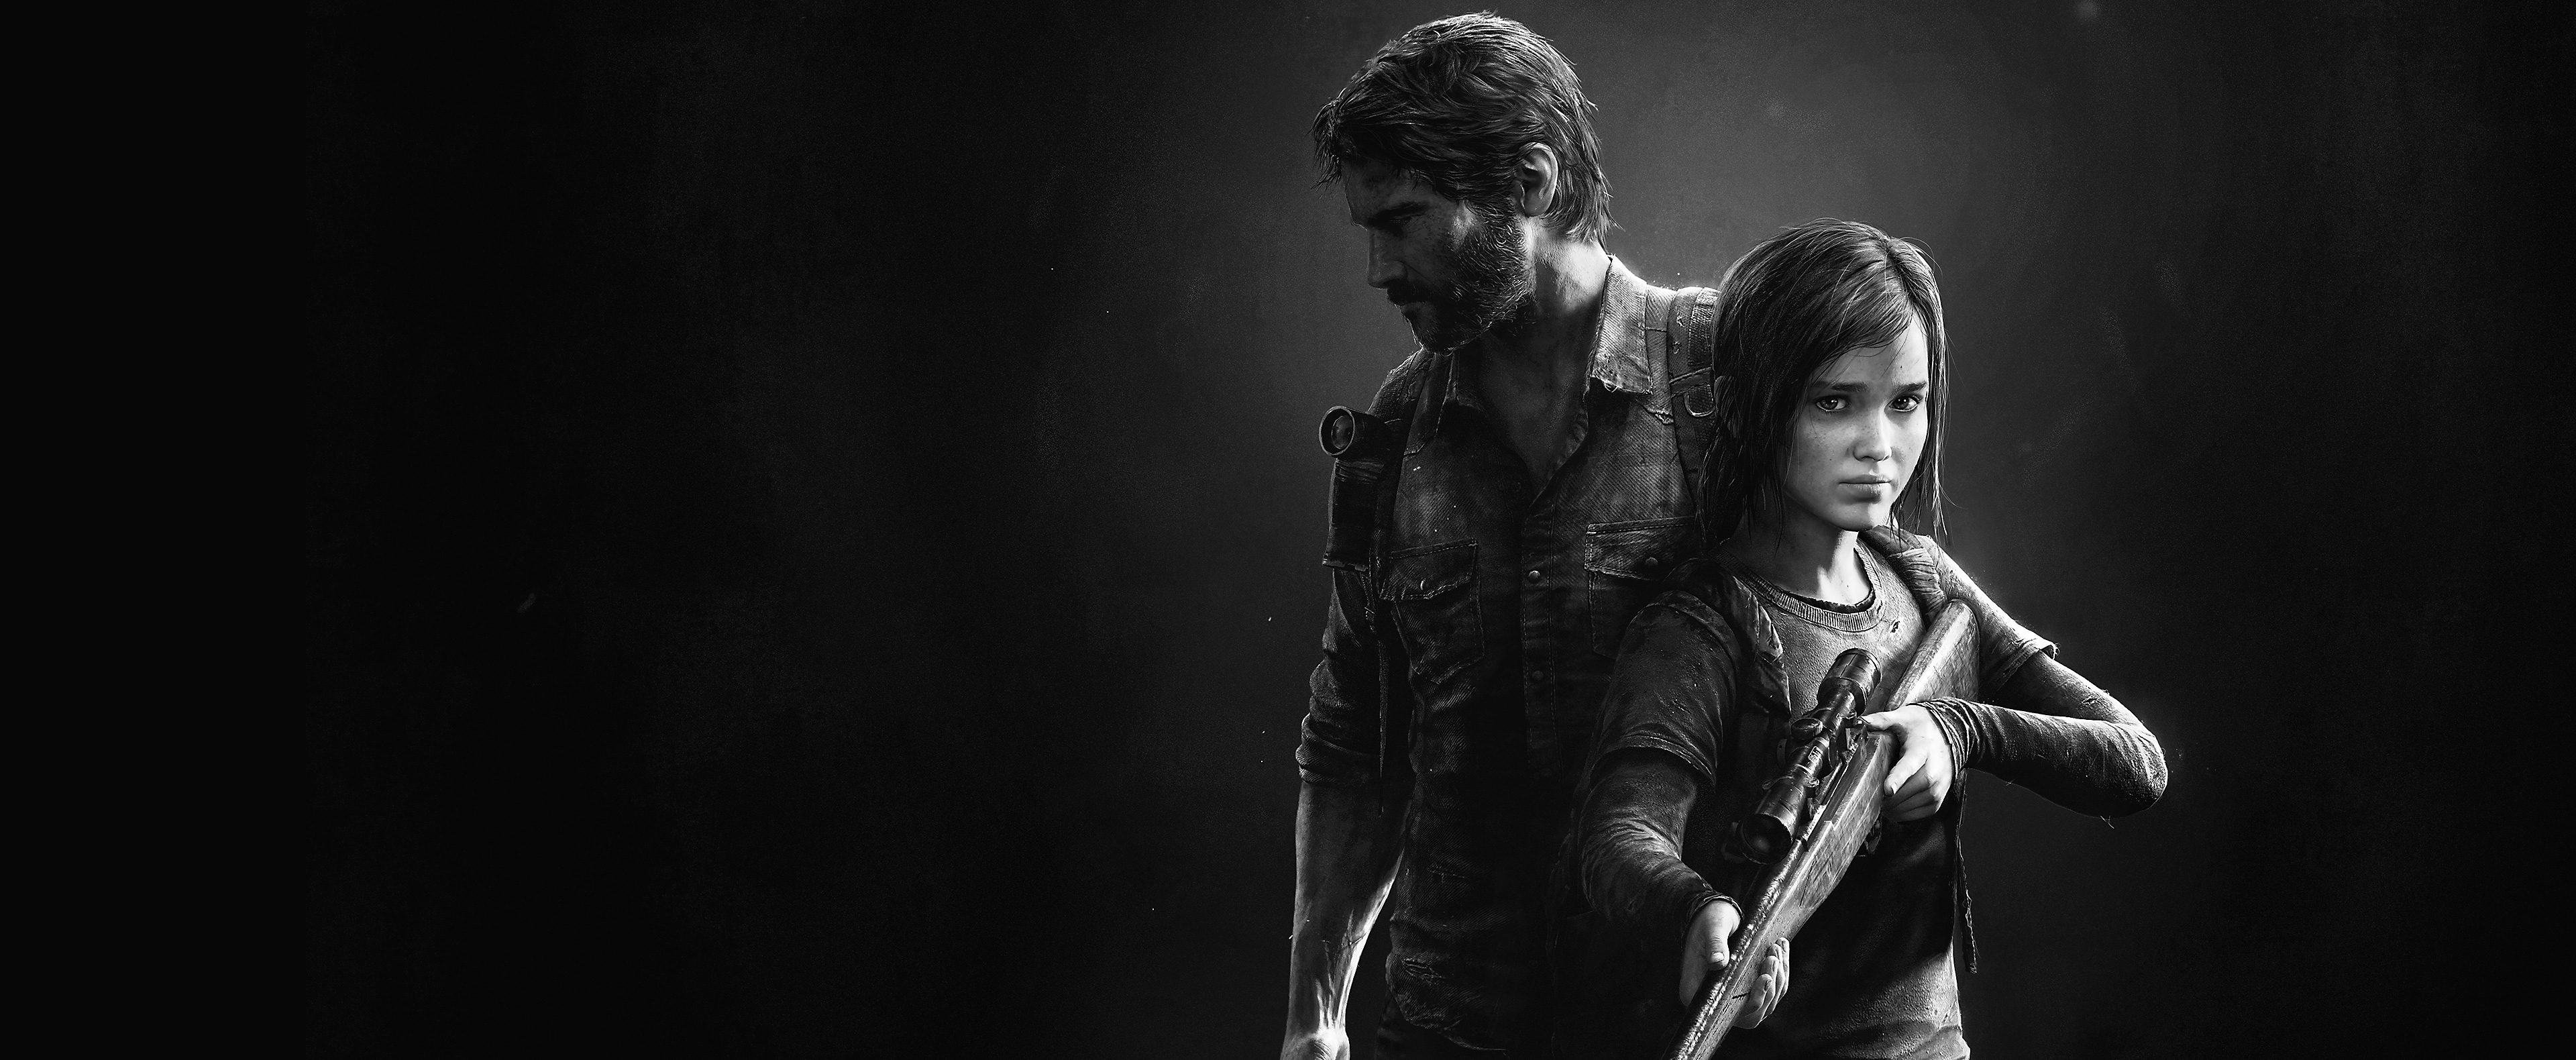 the last of us remastered -sankari